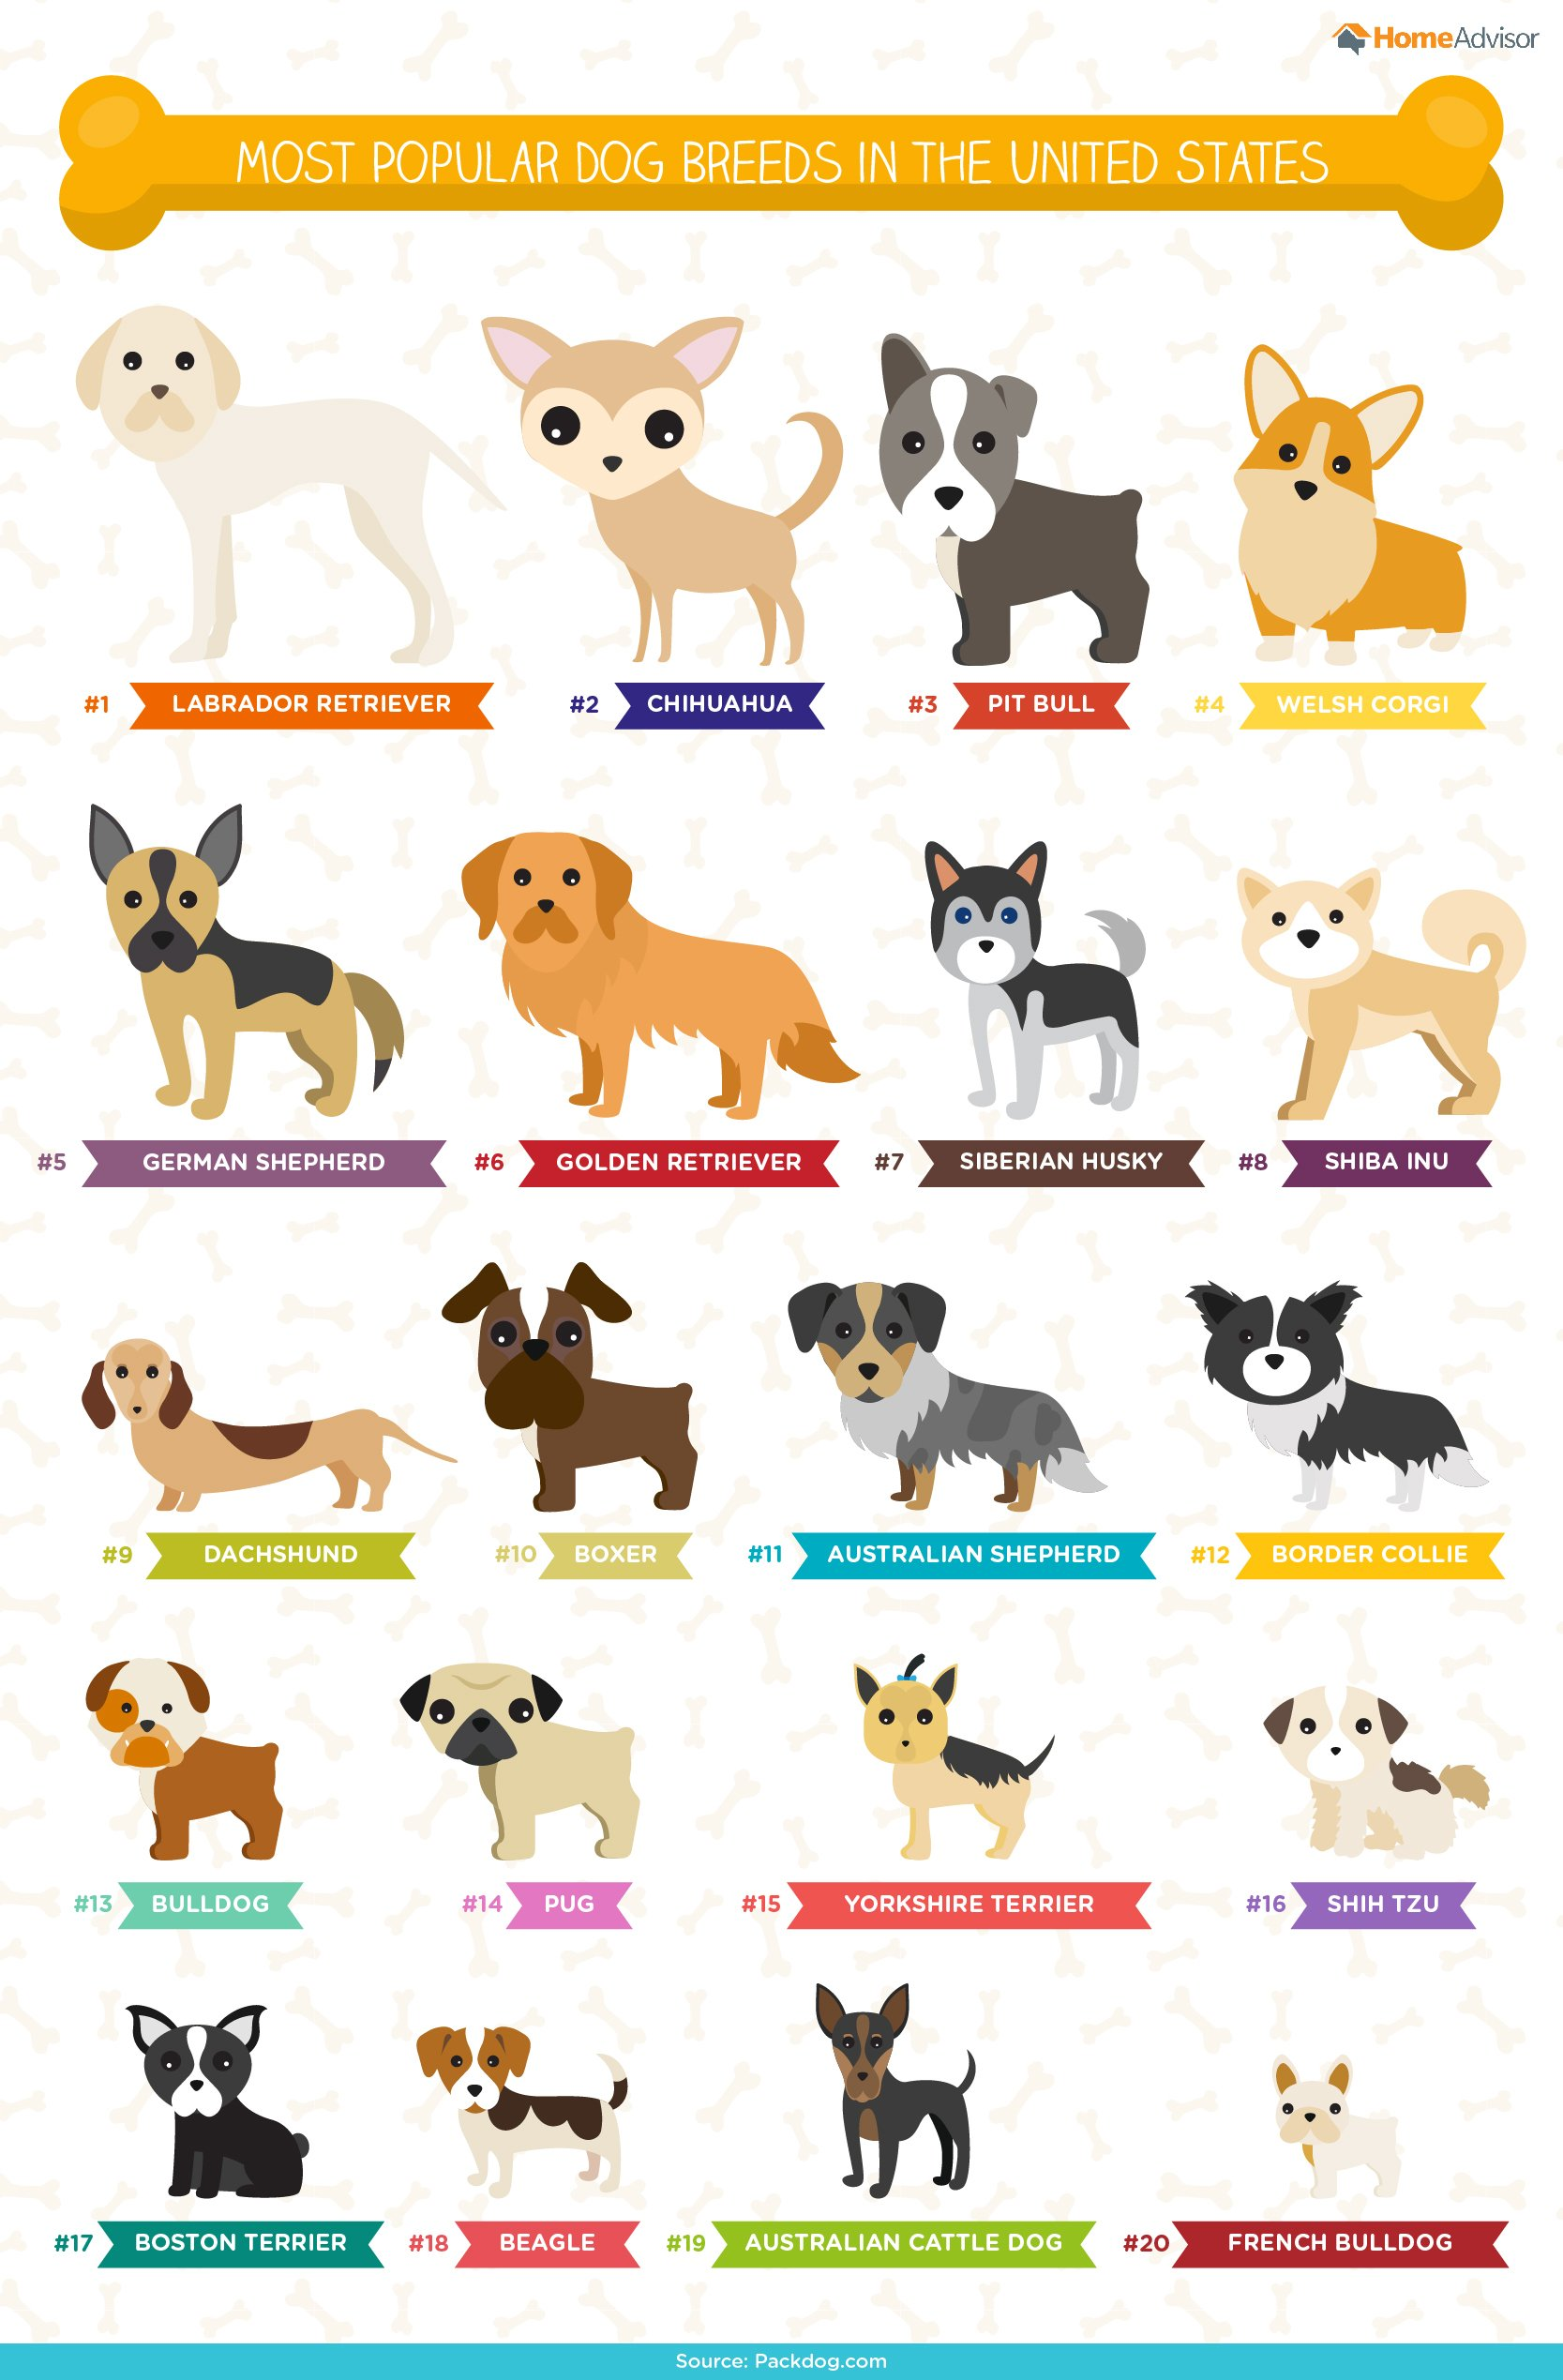 Top 10 dog breeds - Most popular dog breeds in